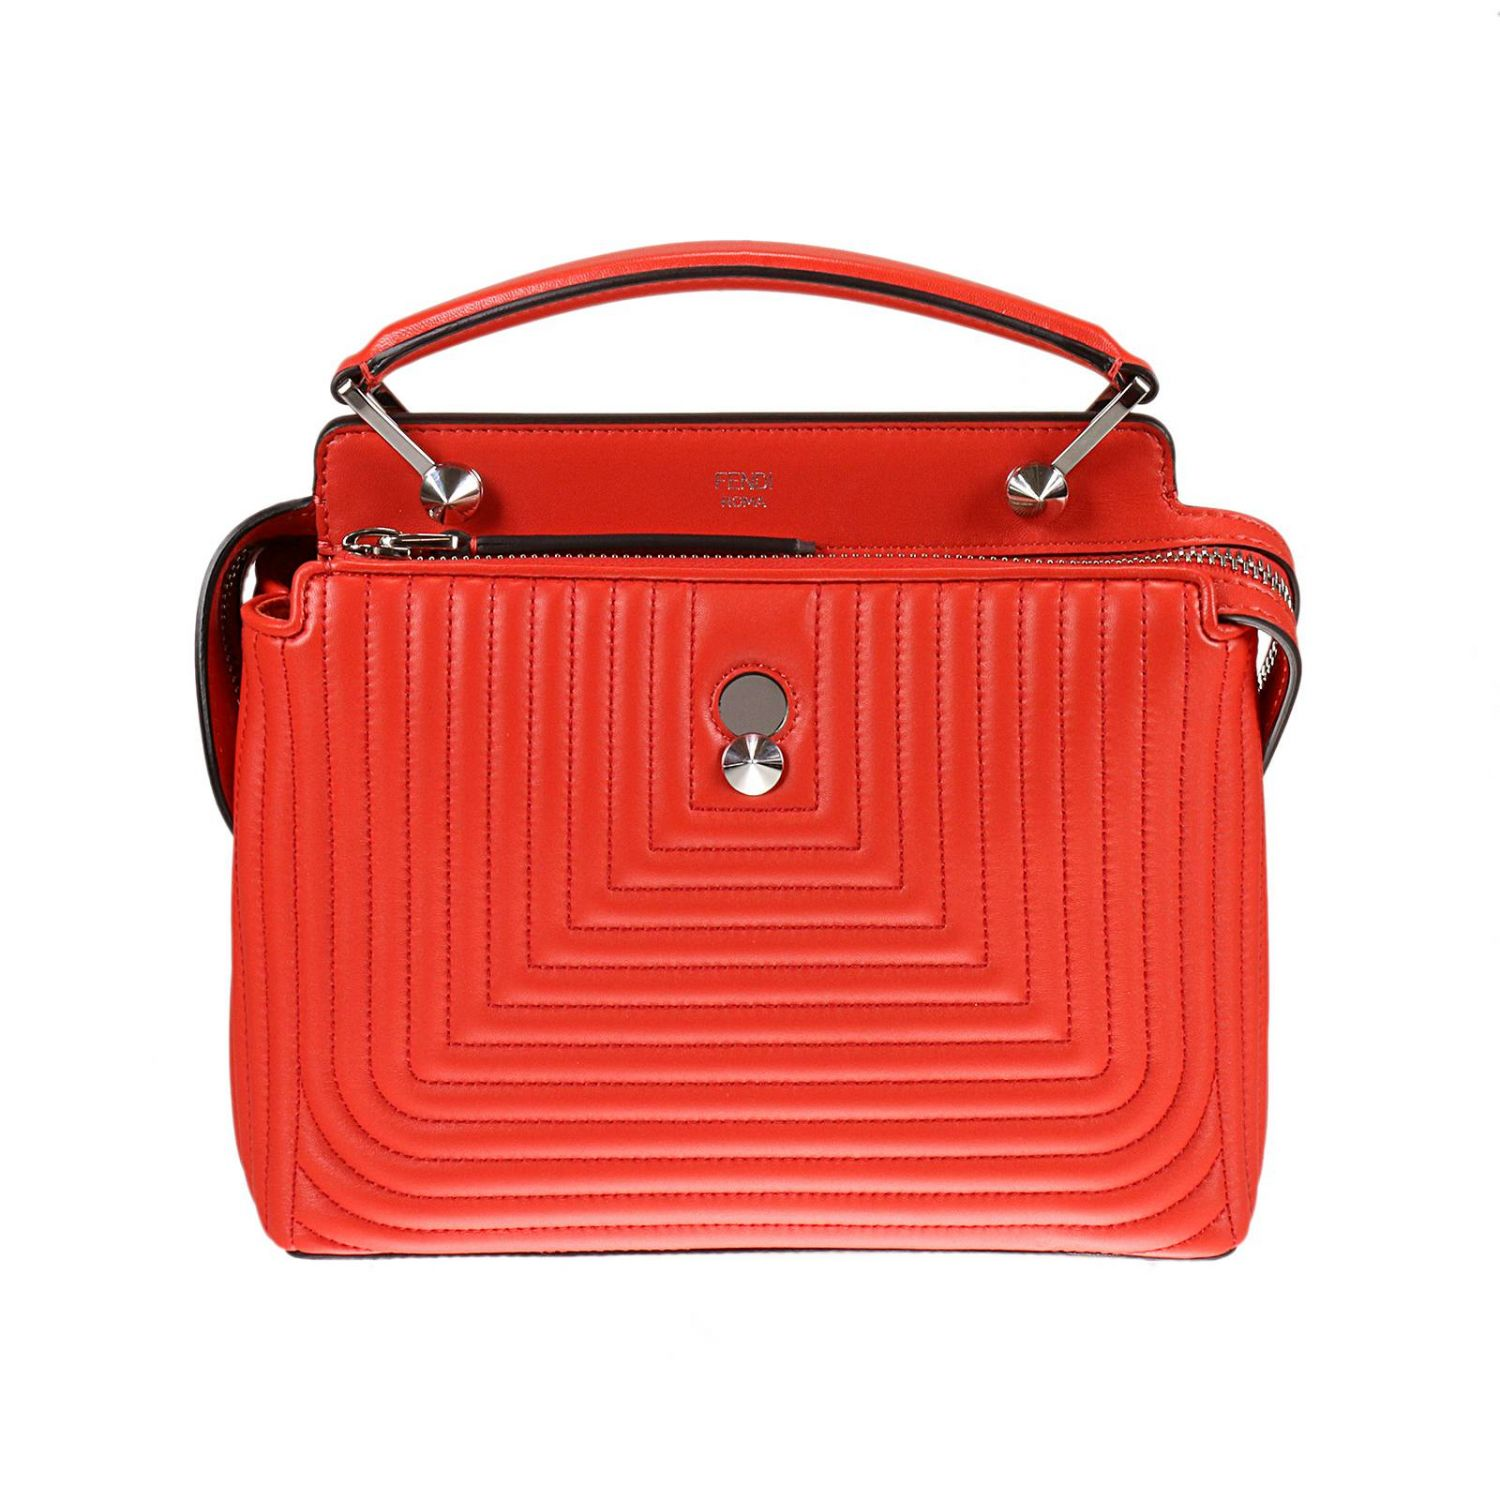 Handbag Handbag Woman Fendi 8107860